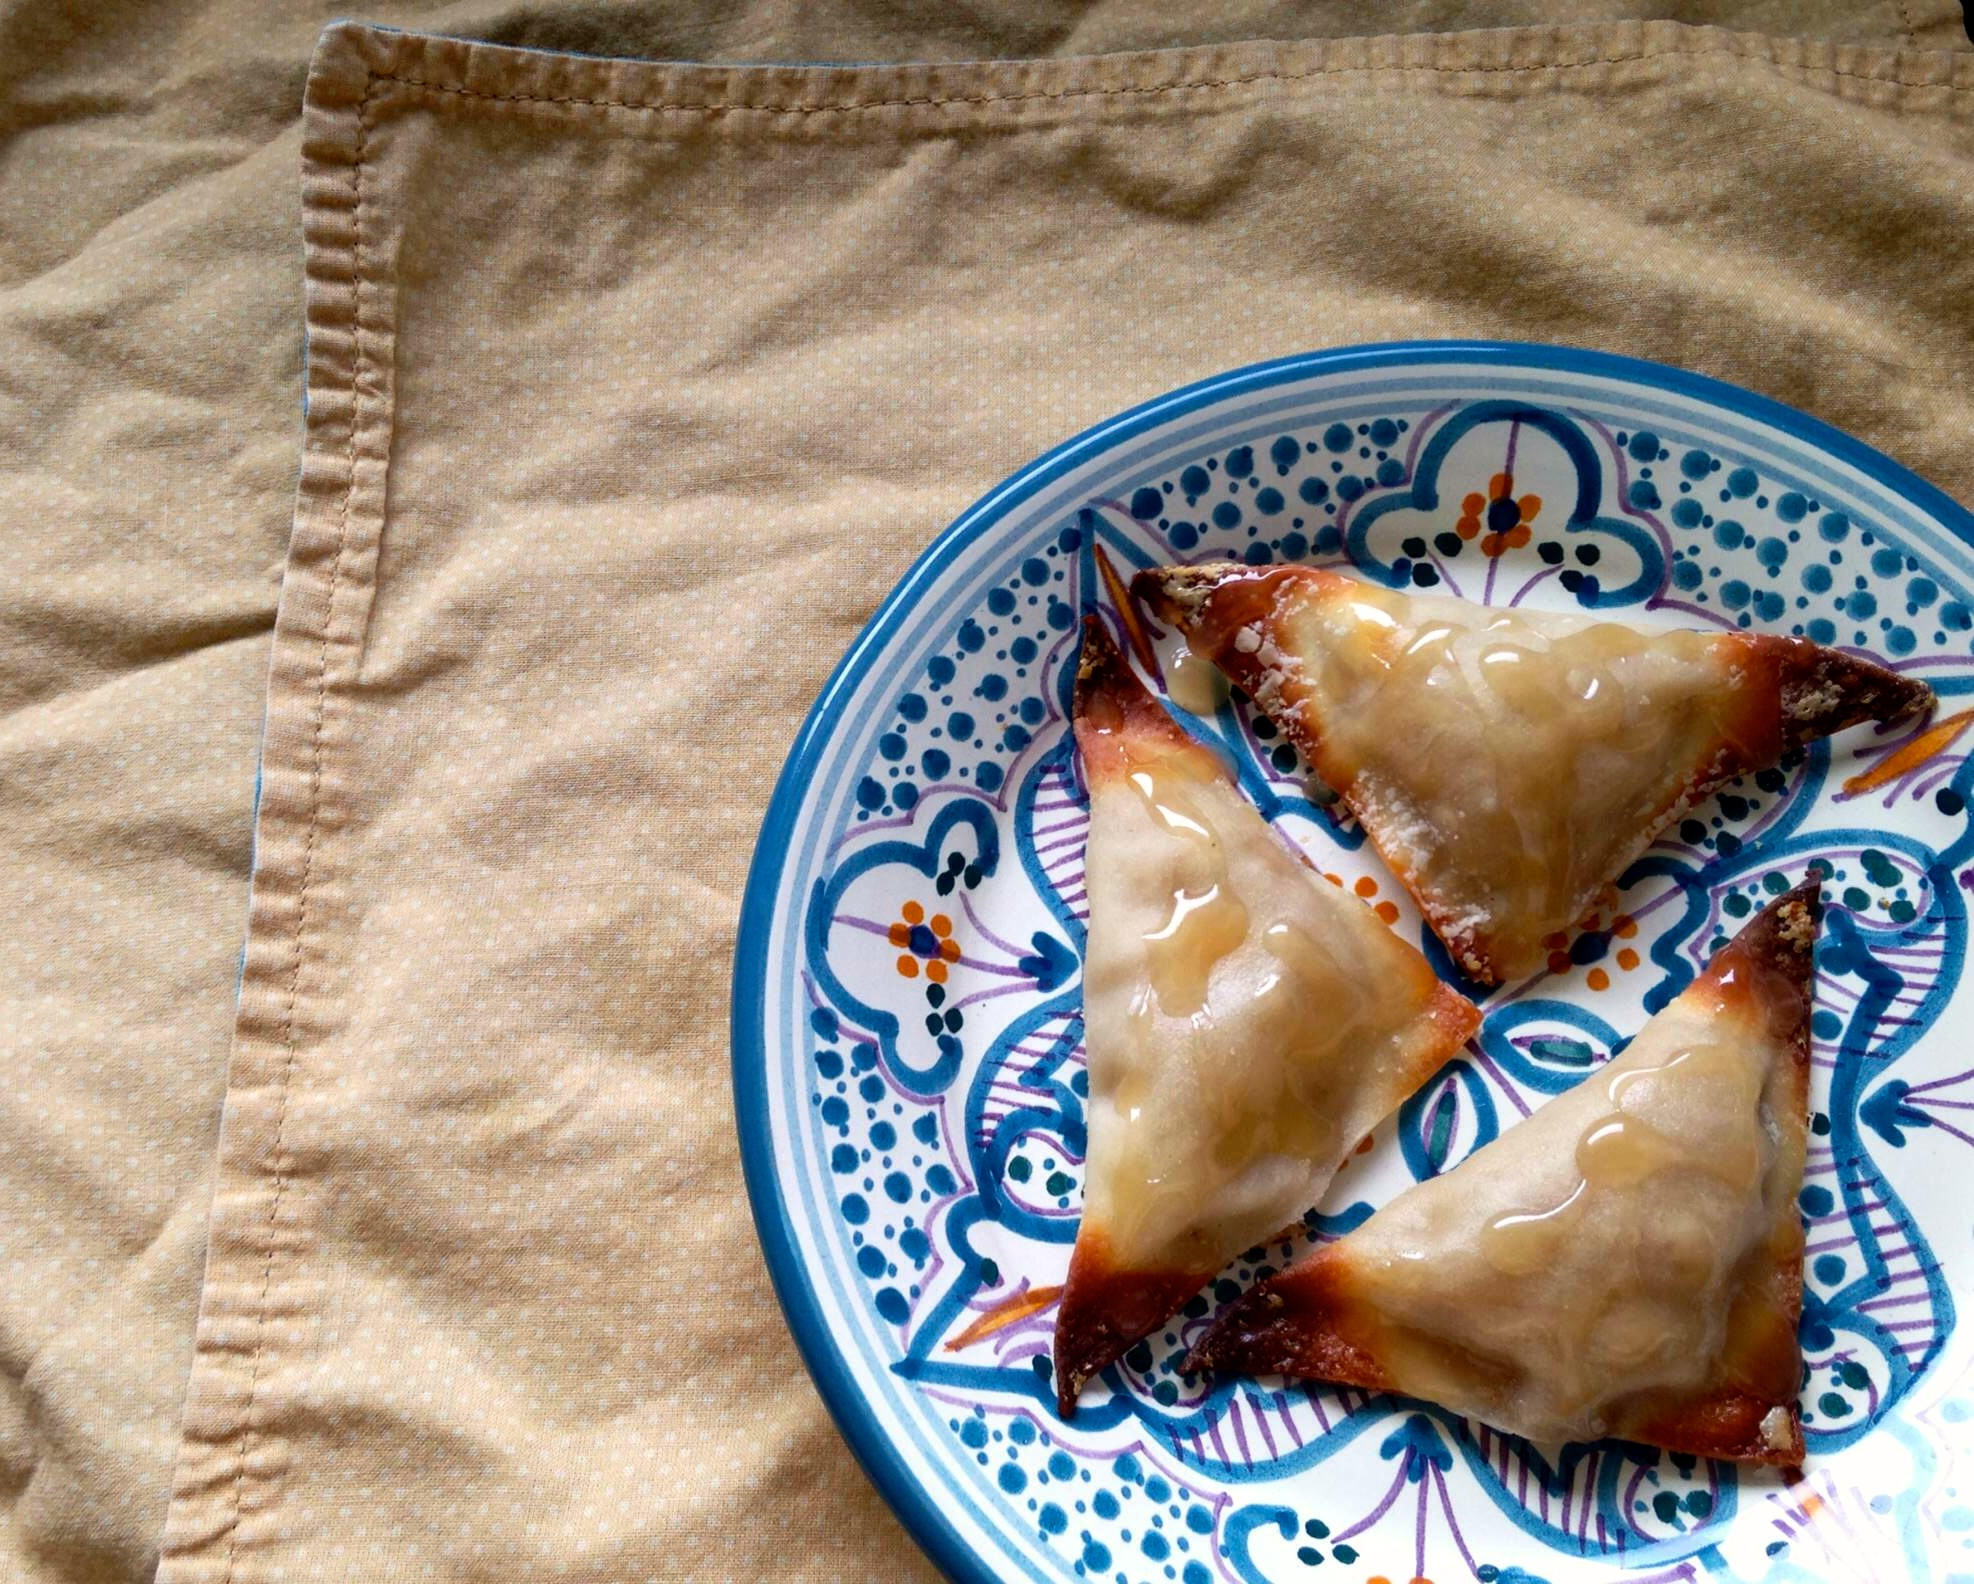 ... Winning Wednesday' Baked Banana Wontons with Coconut Caramel Drizzle